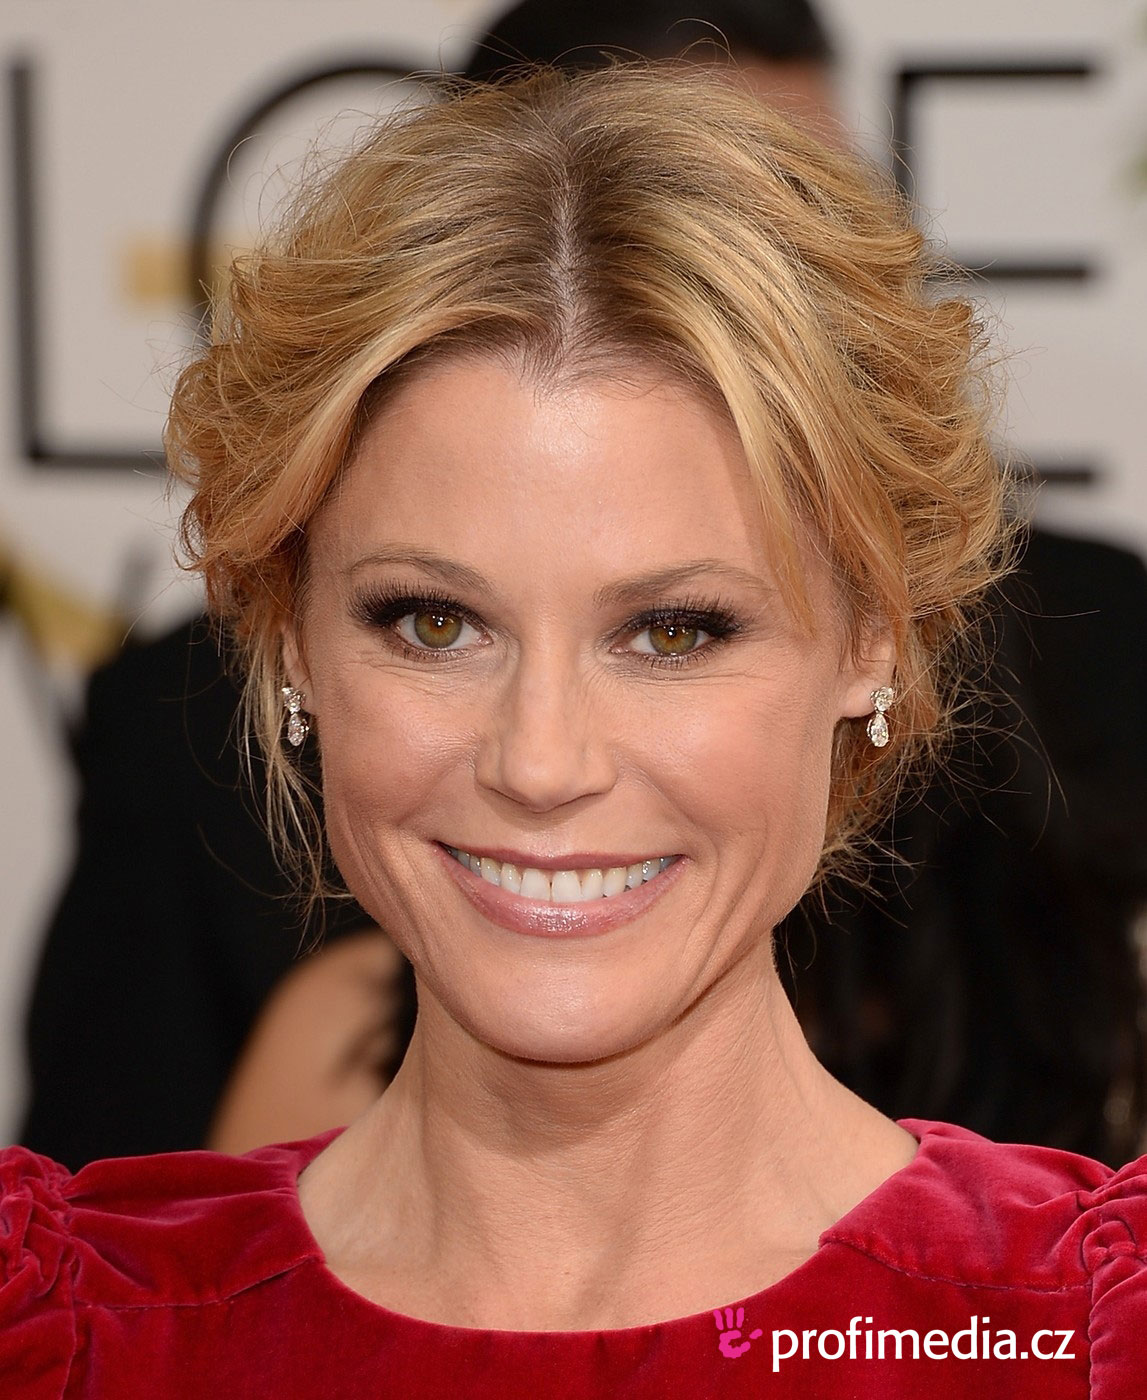 Julie bowen hairstyle easyhairstyler you can try this julie bowens hairstyle with your own photo upload at easyhairstyler urmus Gallery